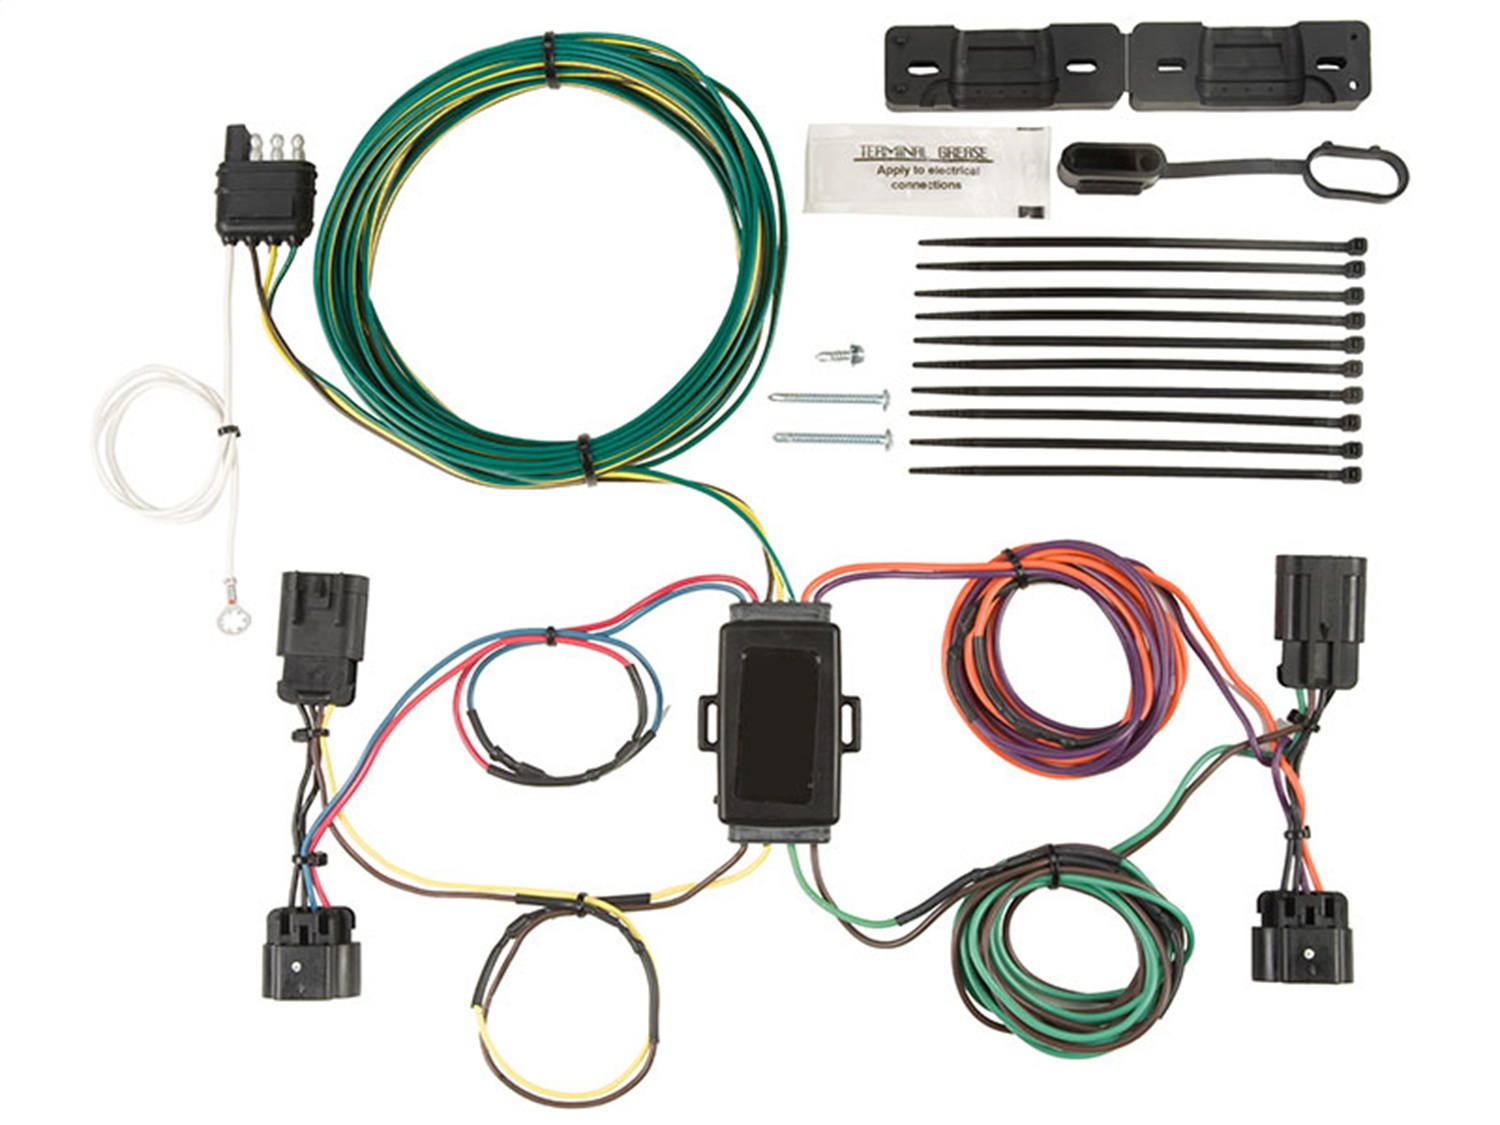 ox bx88276 ez light wiring harness kit trailer wire installation kit